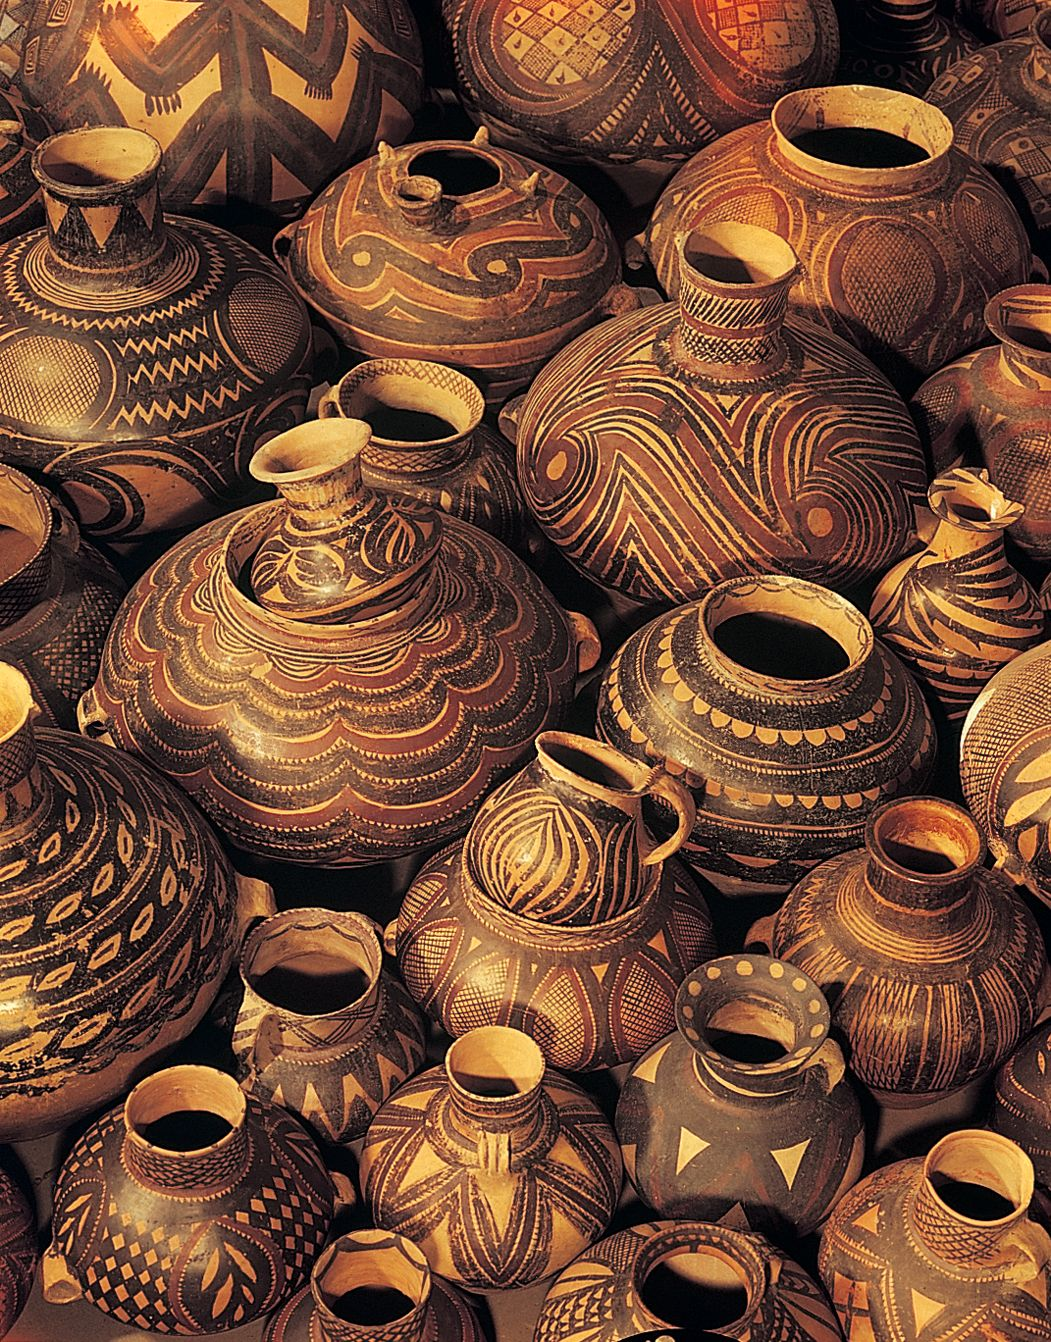 Yangshao culture vases from gansu province china art history yangshao culture vases from gansu province china reviewsmspy